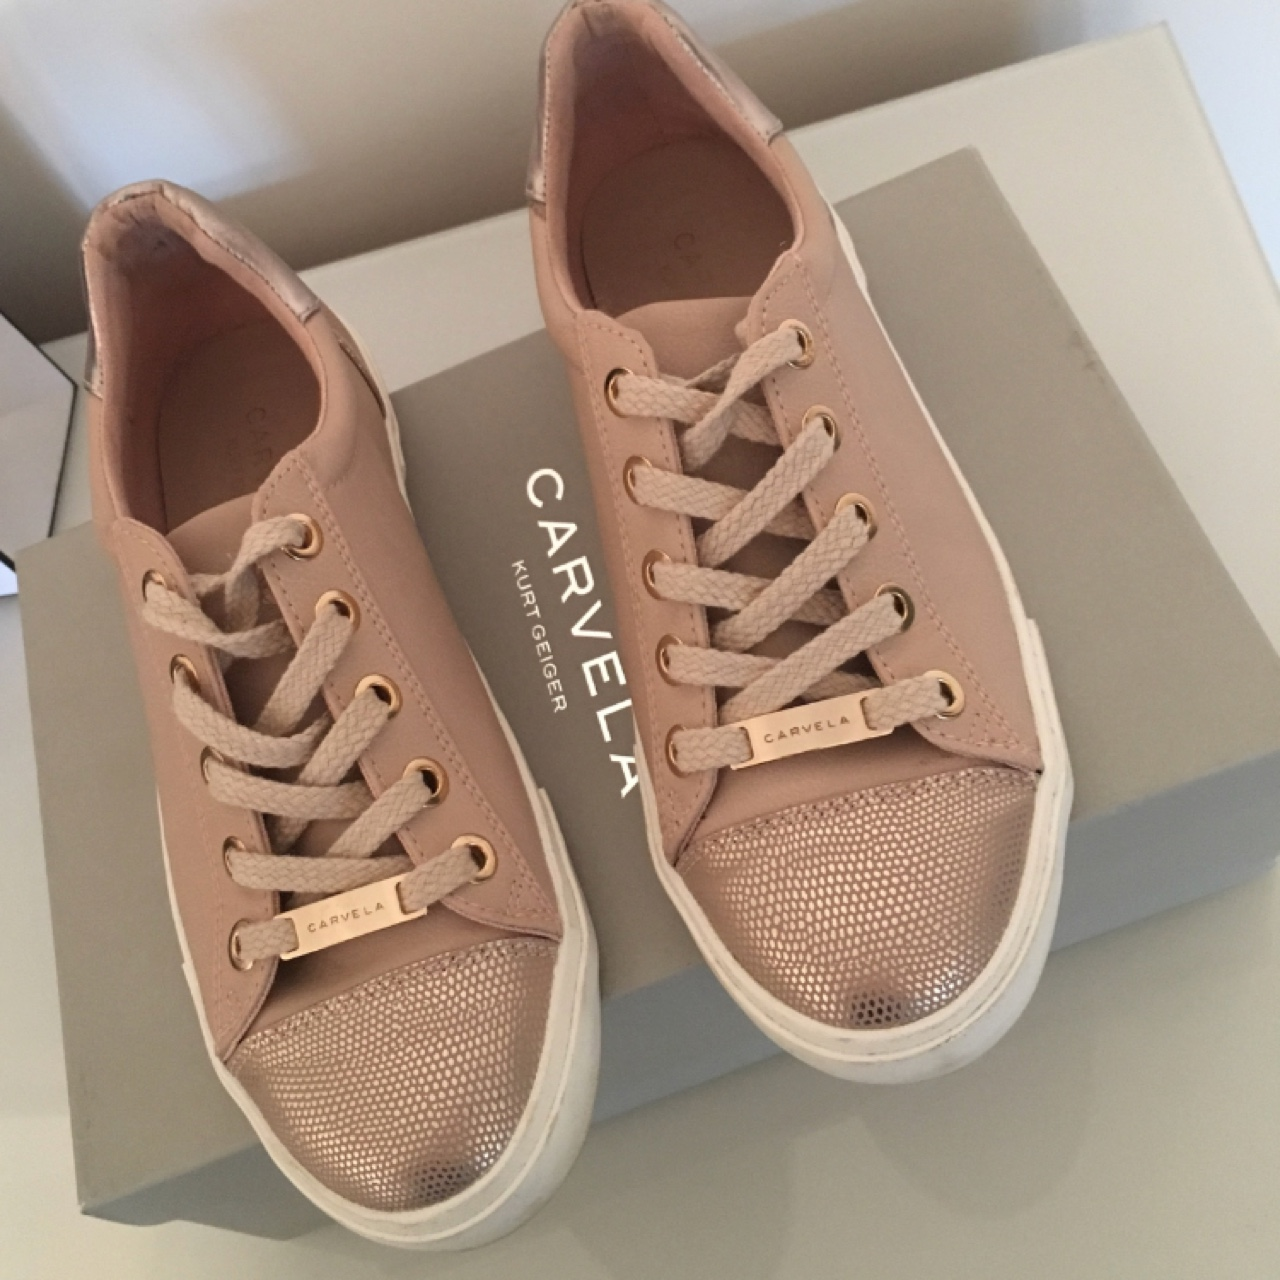 Carvela light trainers in pale pink